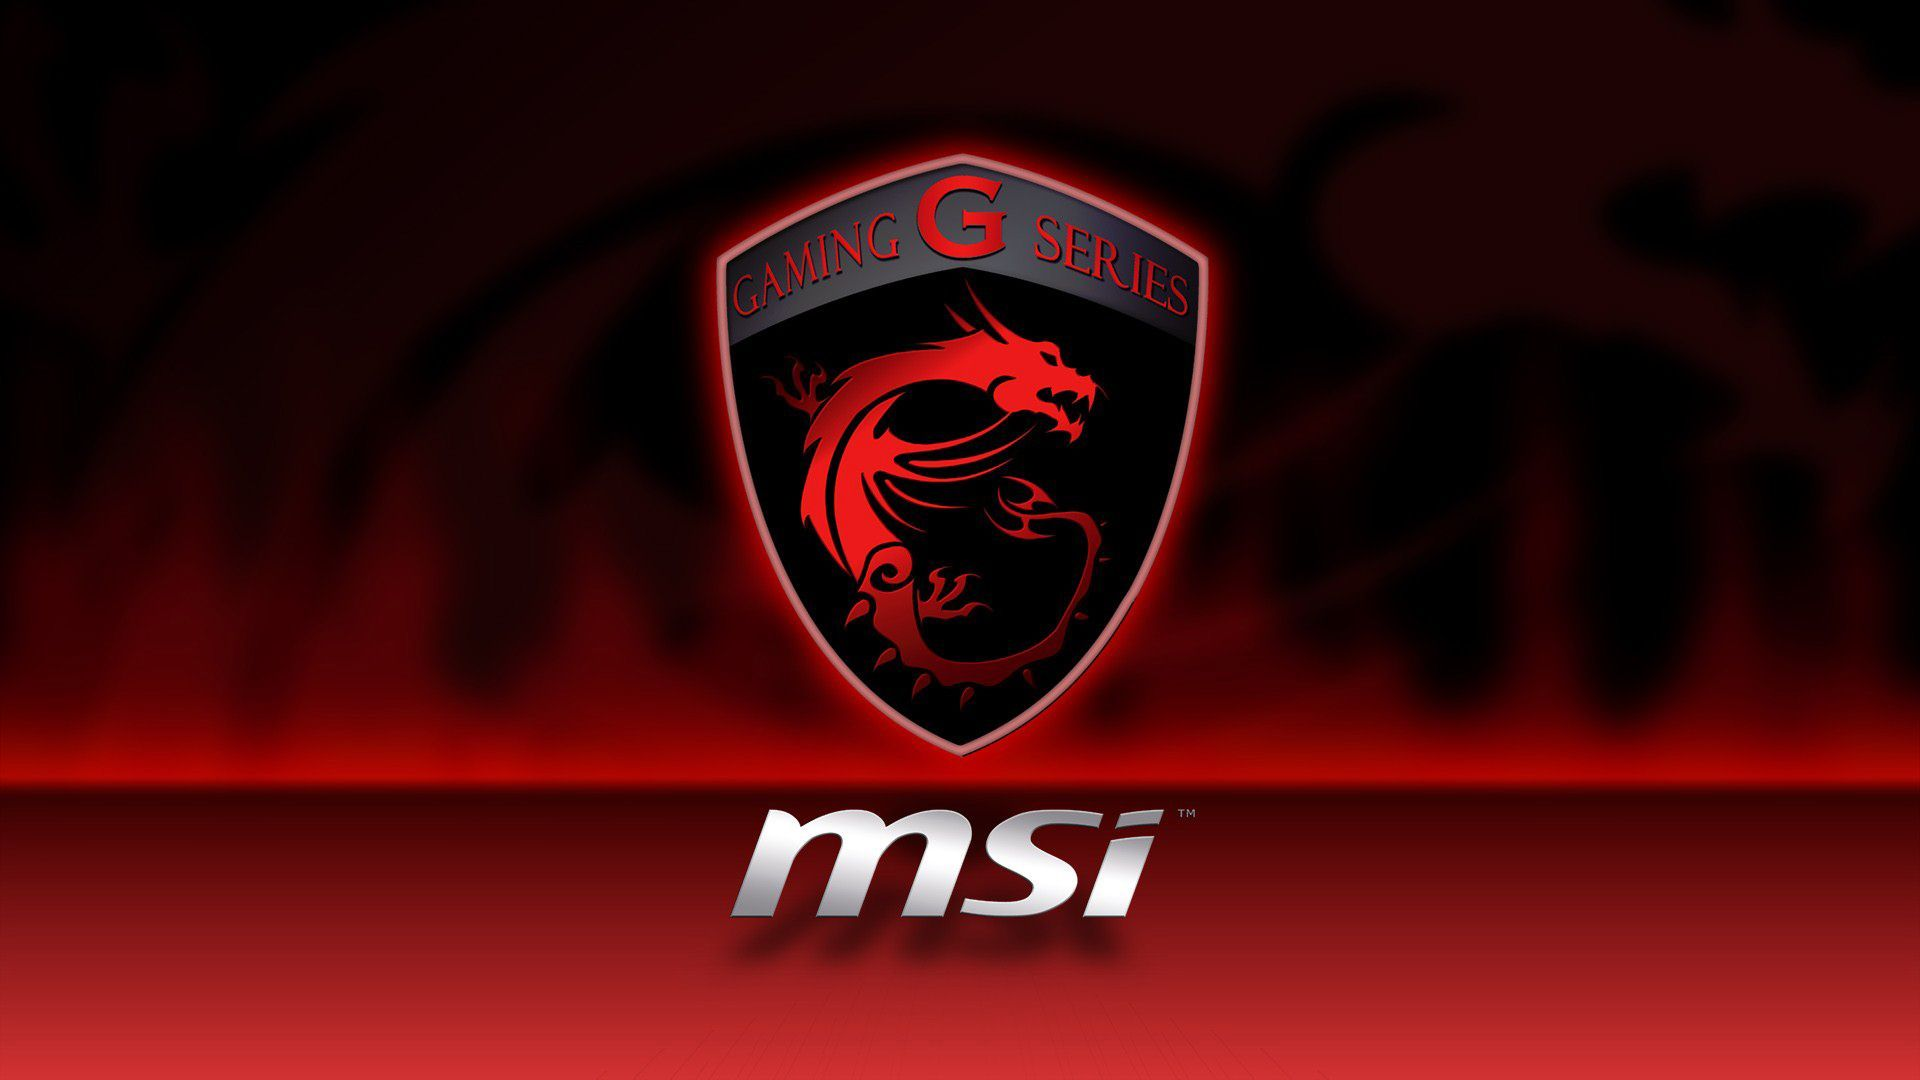 Msi gaming wallpaper 1920x1080 sharovarka pinterest gaming msi gaming wallpaper 1920x1080 voltagebd Images